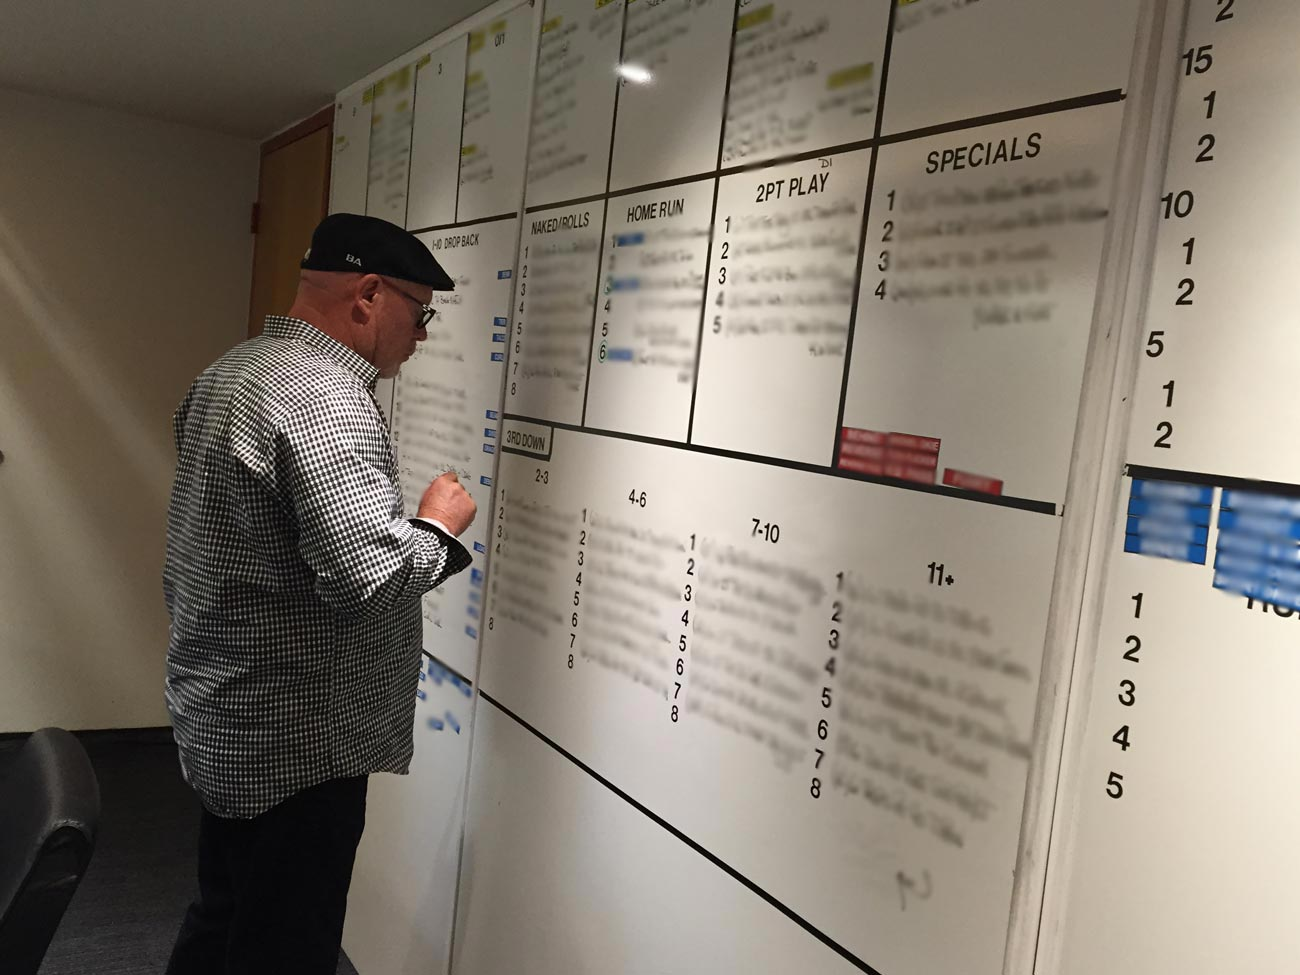 Arians draws up the game plan on the whiteboard. His favorites—and his quarterback's, too—are the Home Runs. (Image has been retouched to obscure play names.)